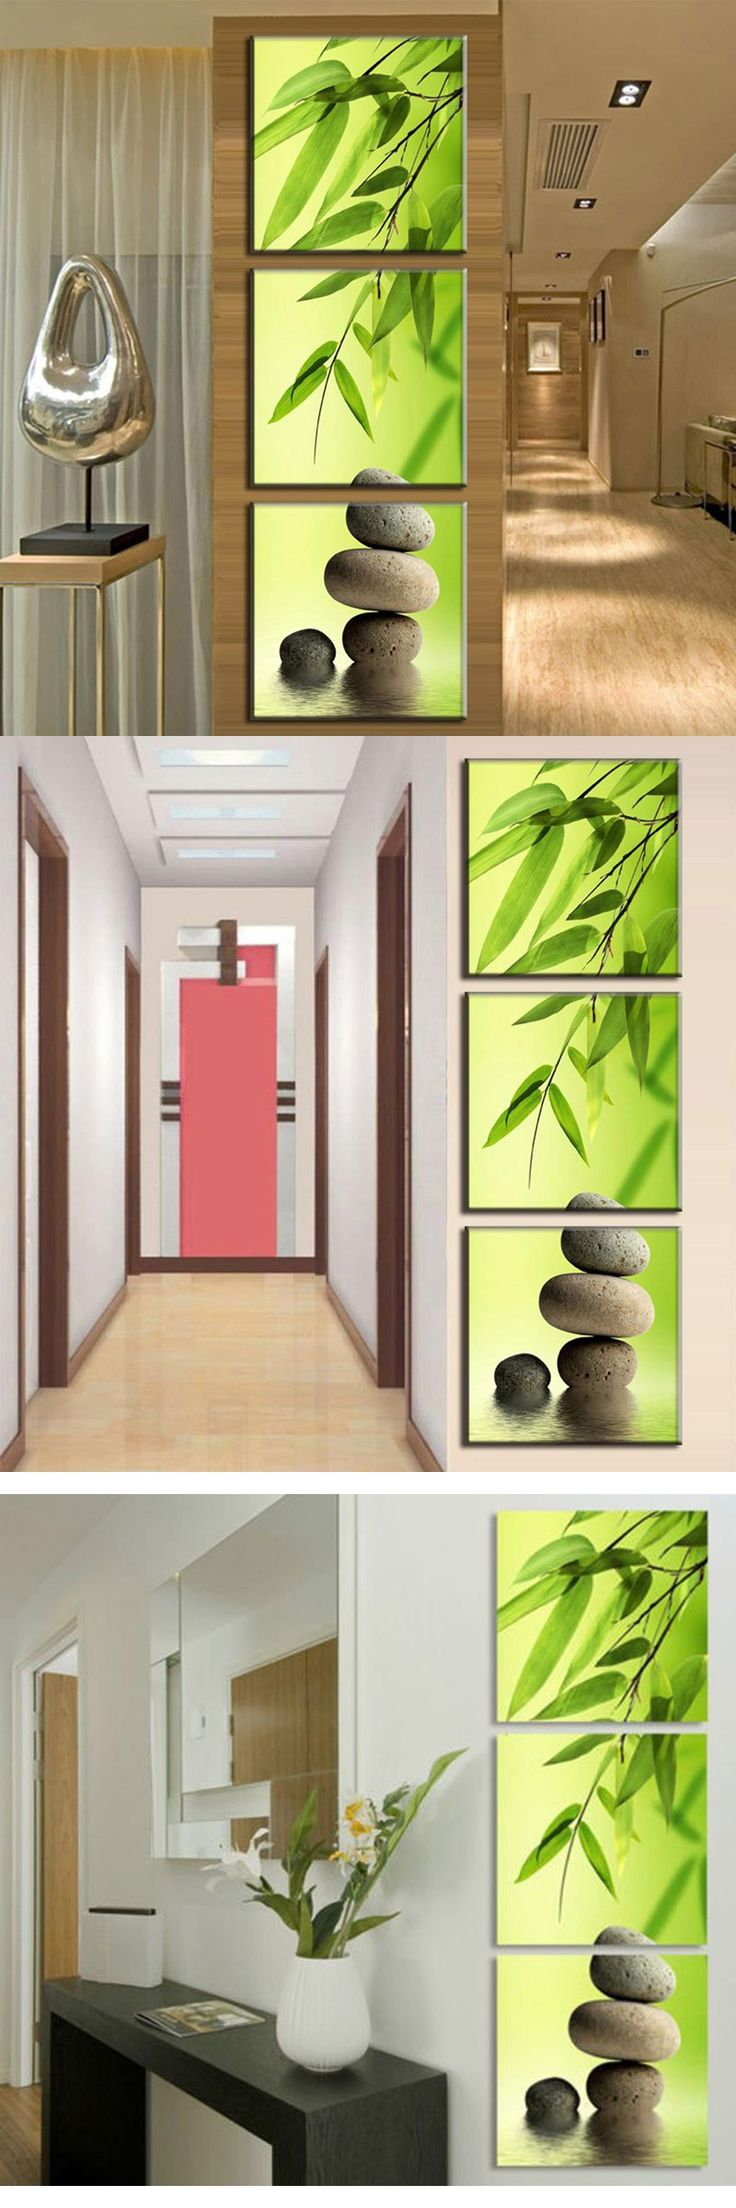 3 Panel Modern Wall Art Painting With Bamboo And Stone Home Decorative Oil  Painting On Canvas For Living Room Entrance